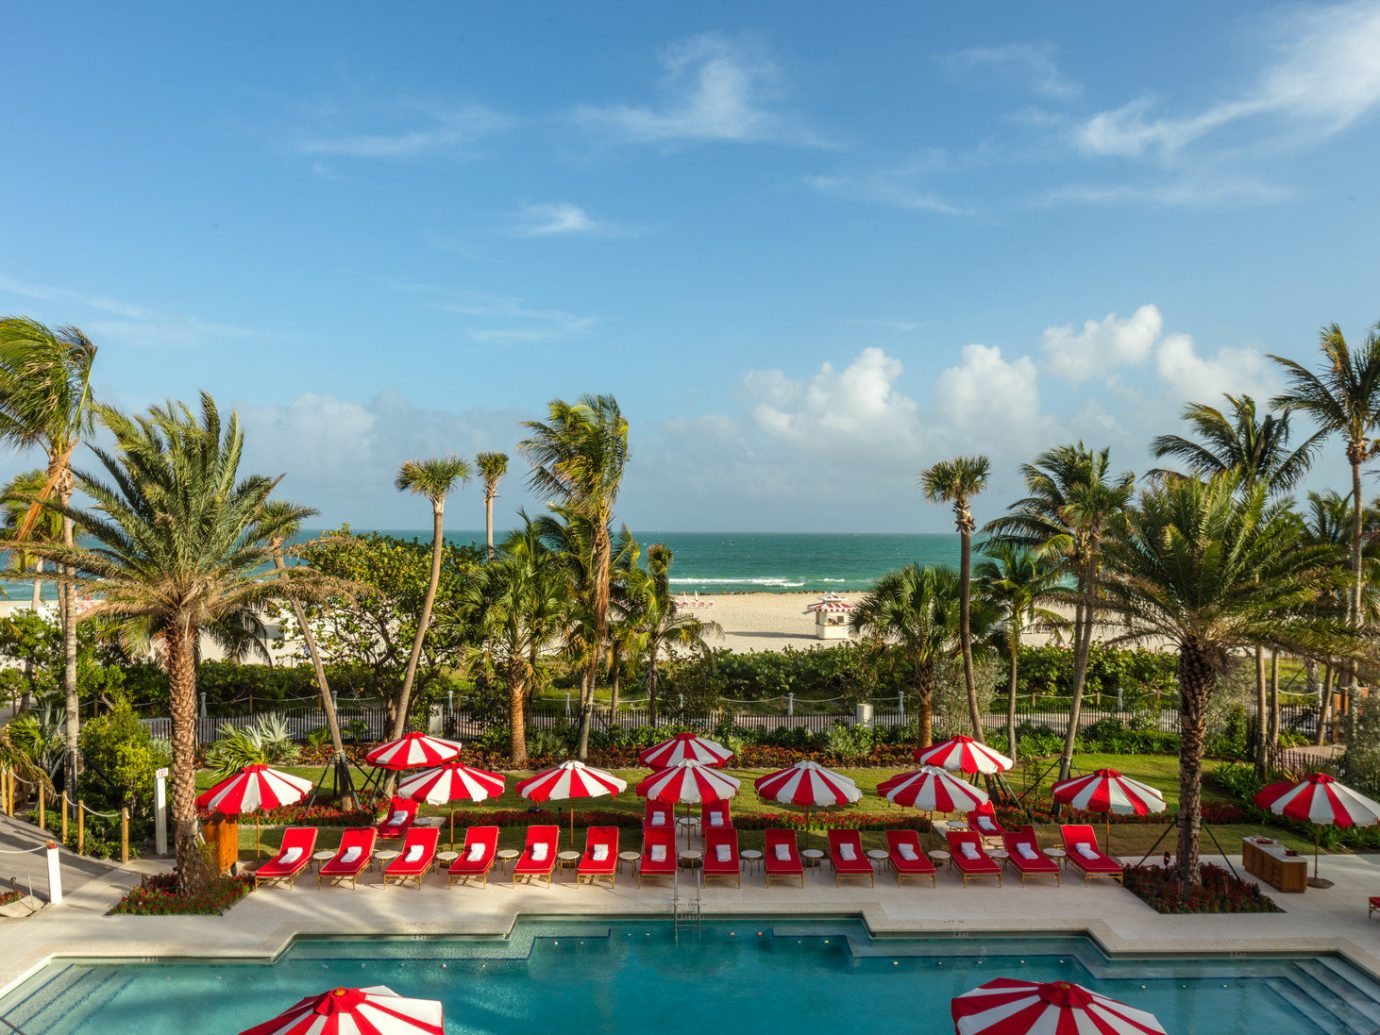 Aerial view of the pool at Faena Hotel Miami Beach